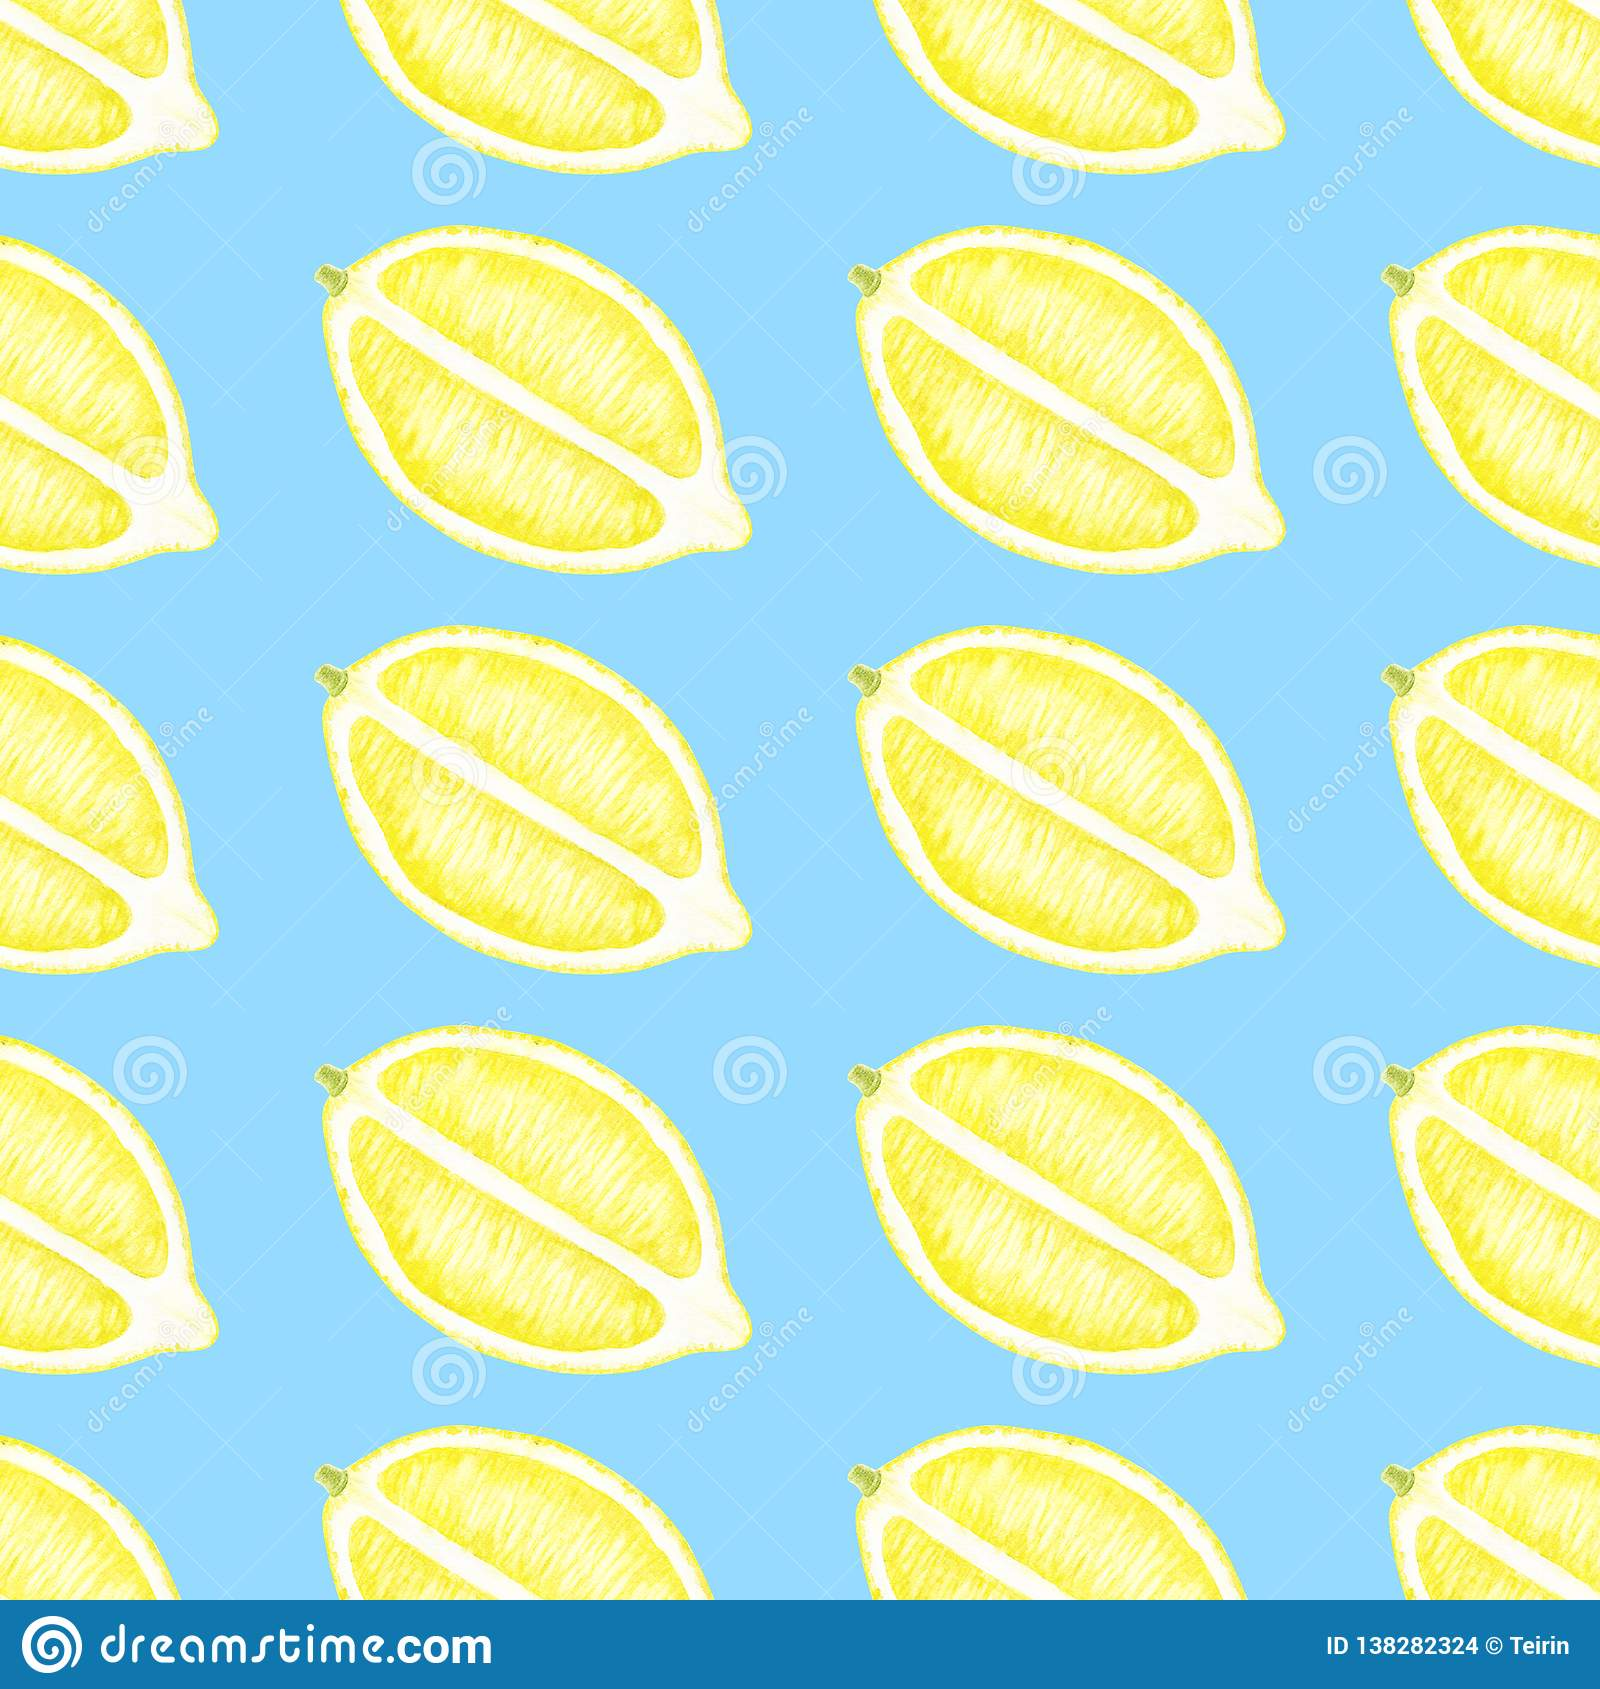 Lemon Green Curtains Lemon Slices Seamless Pattern Watercolor Citrus Illustration